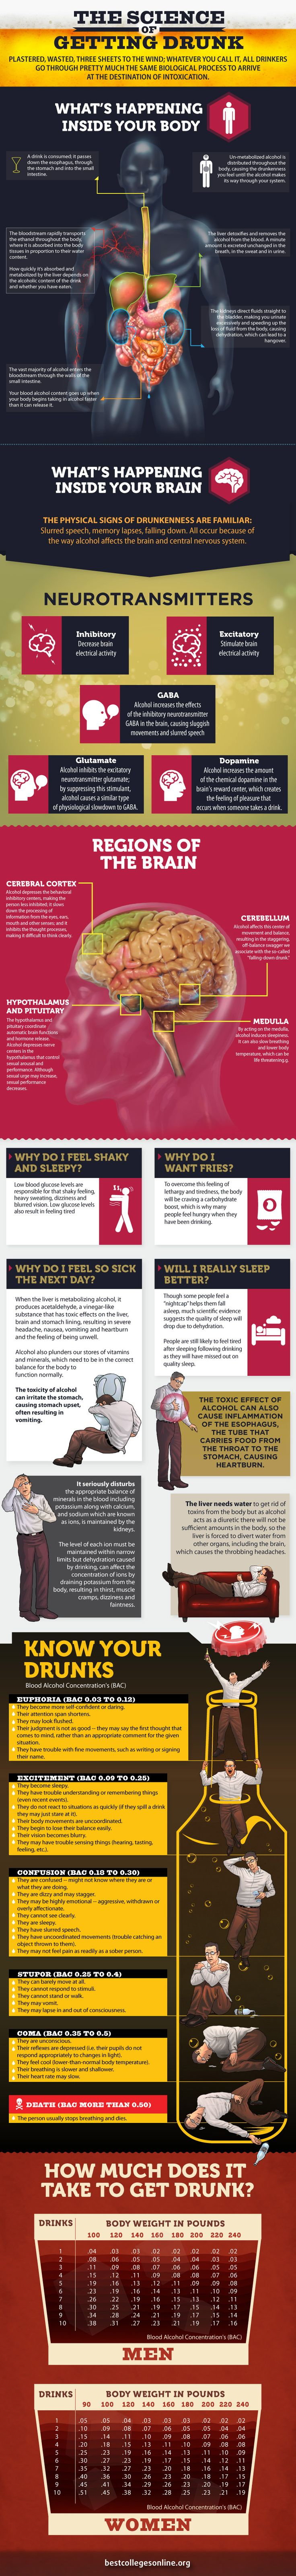 The Science Of Getting Drunk (Infographic)